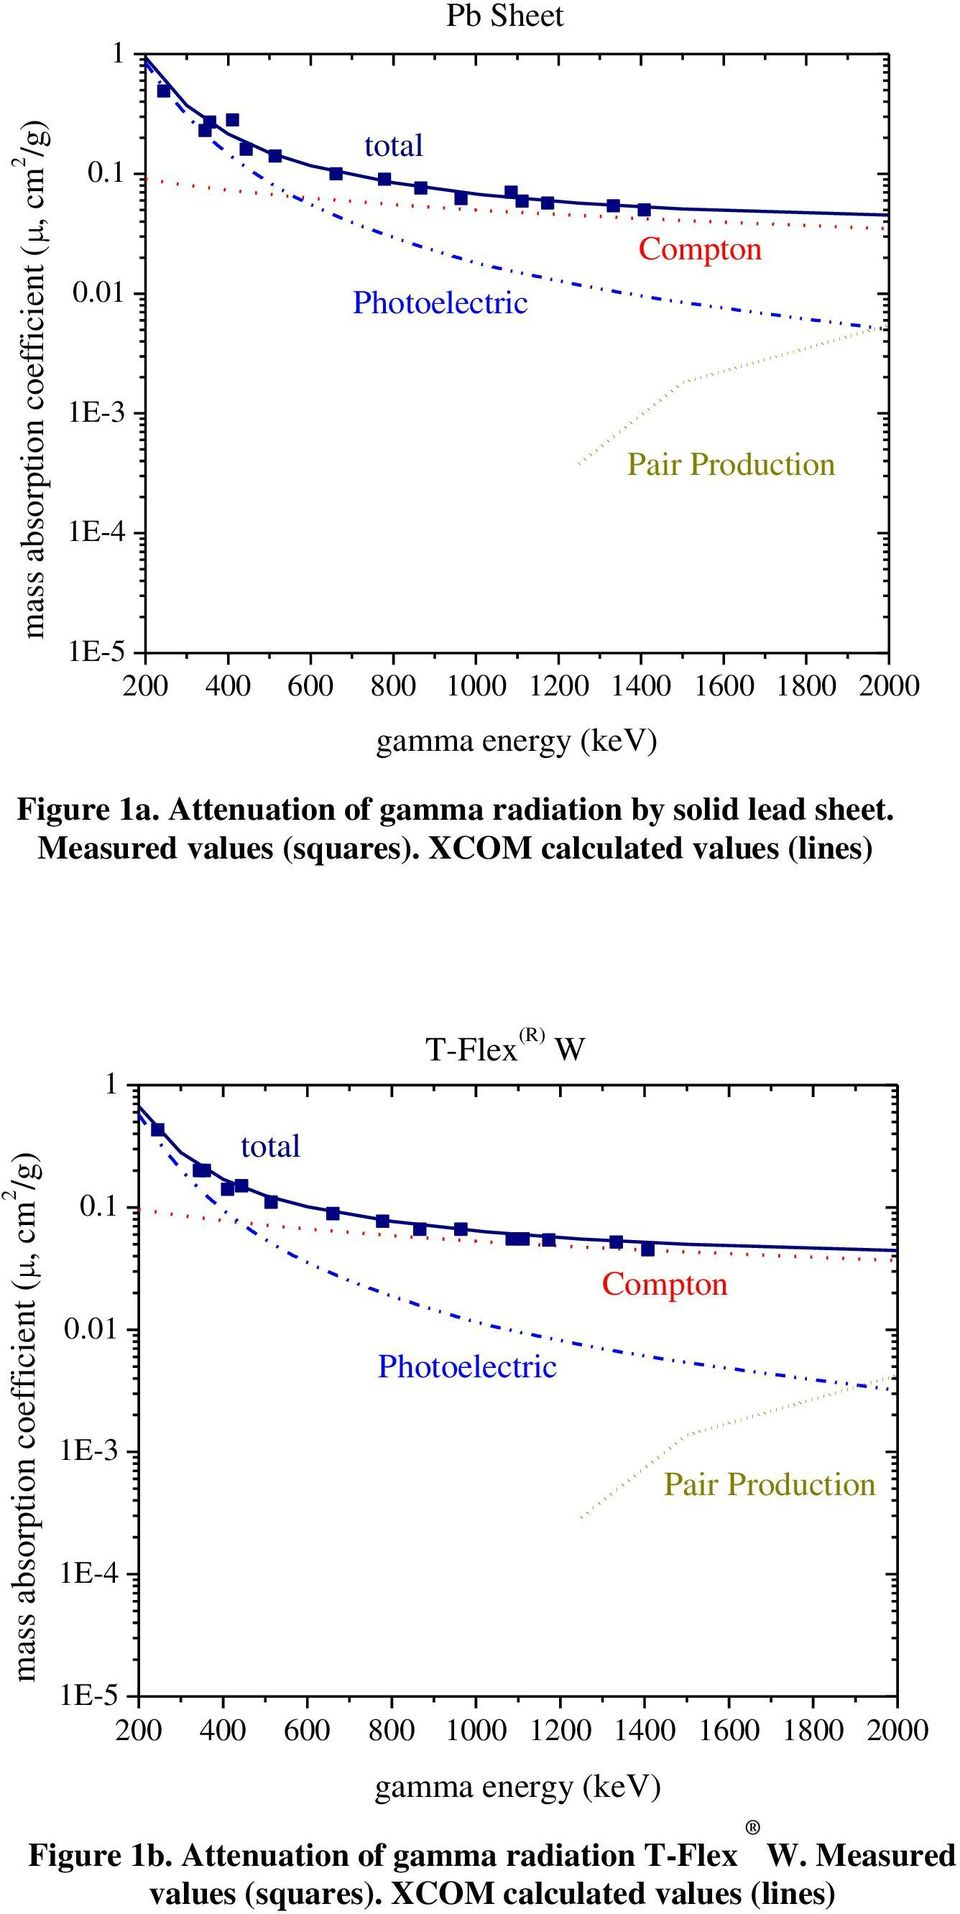 Attenuation of gamma radiation by solid lead sheet. Measured values (squares). XCOM calculated values (lines) total T-Flex (R) W 0.